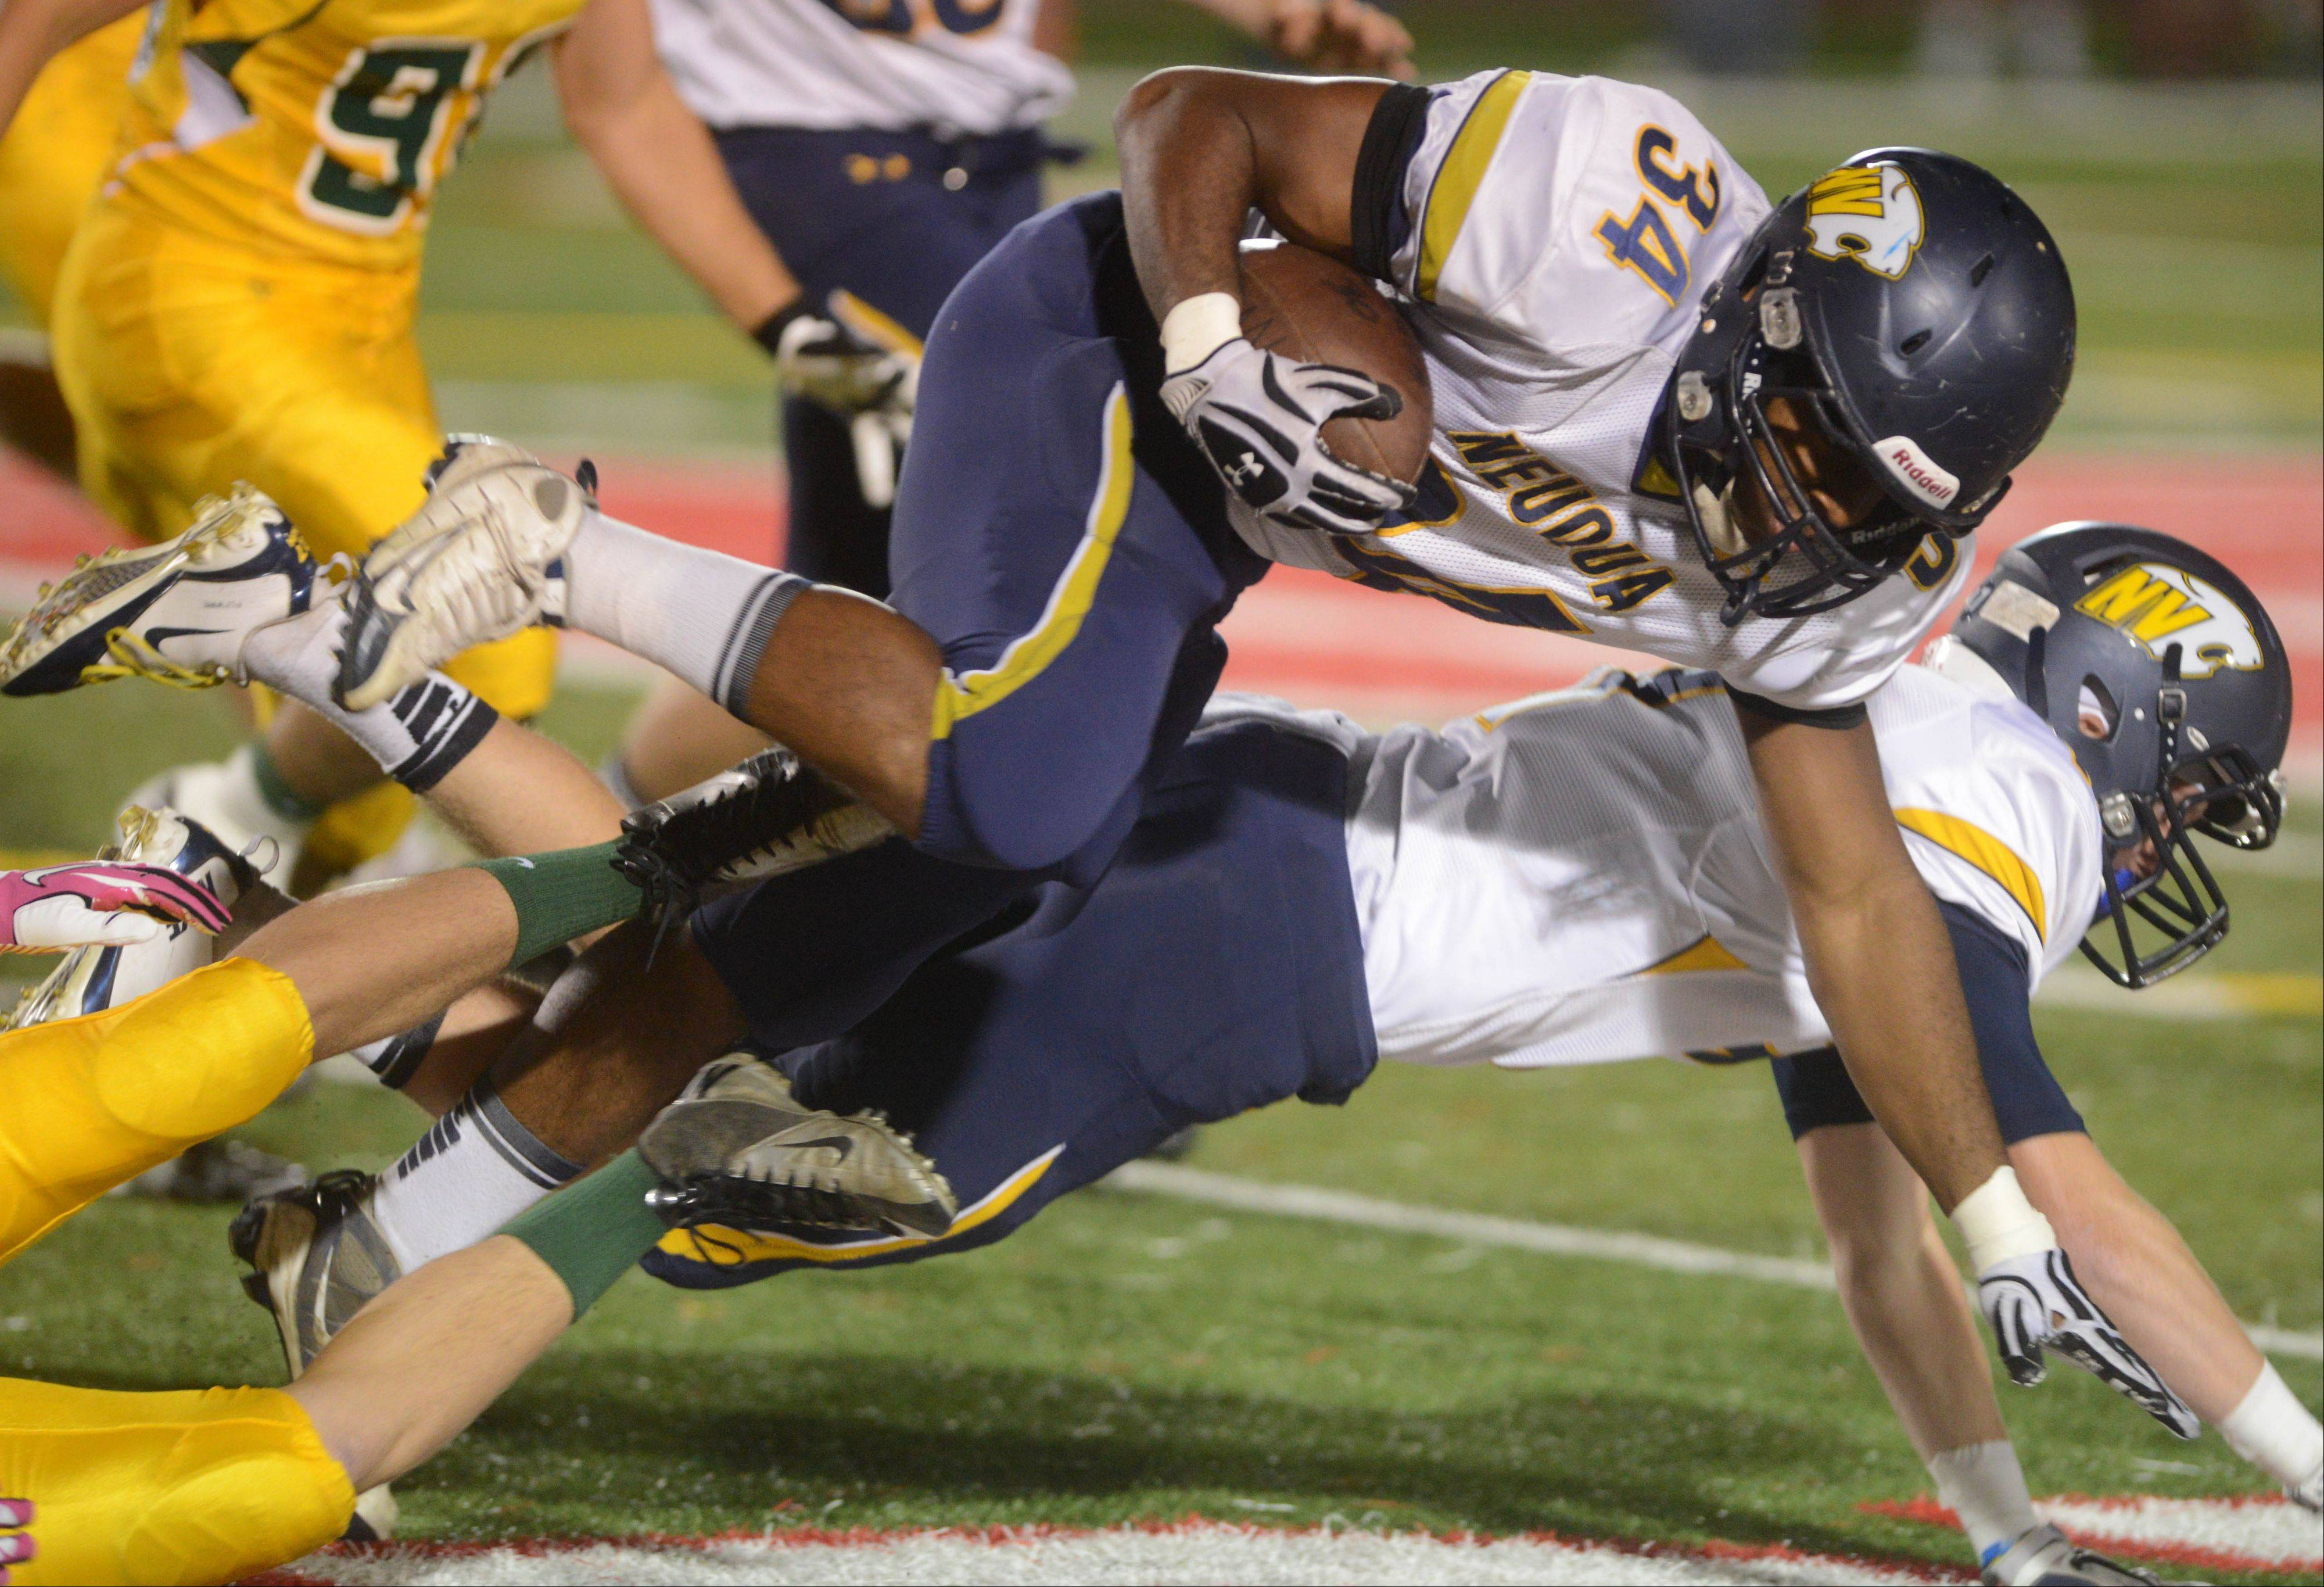 TJ Scruggs of Neuqua Valley moves the ball.